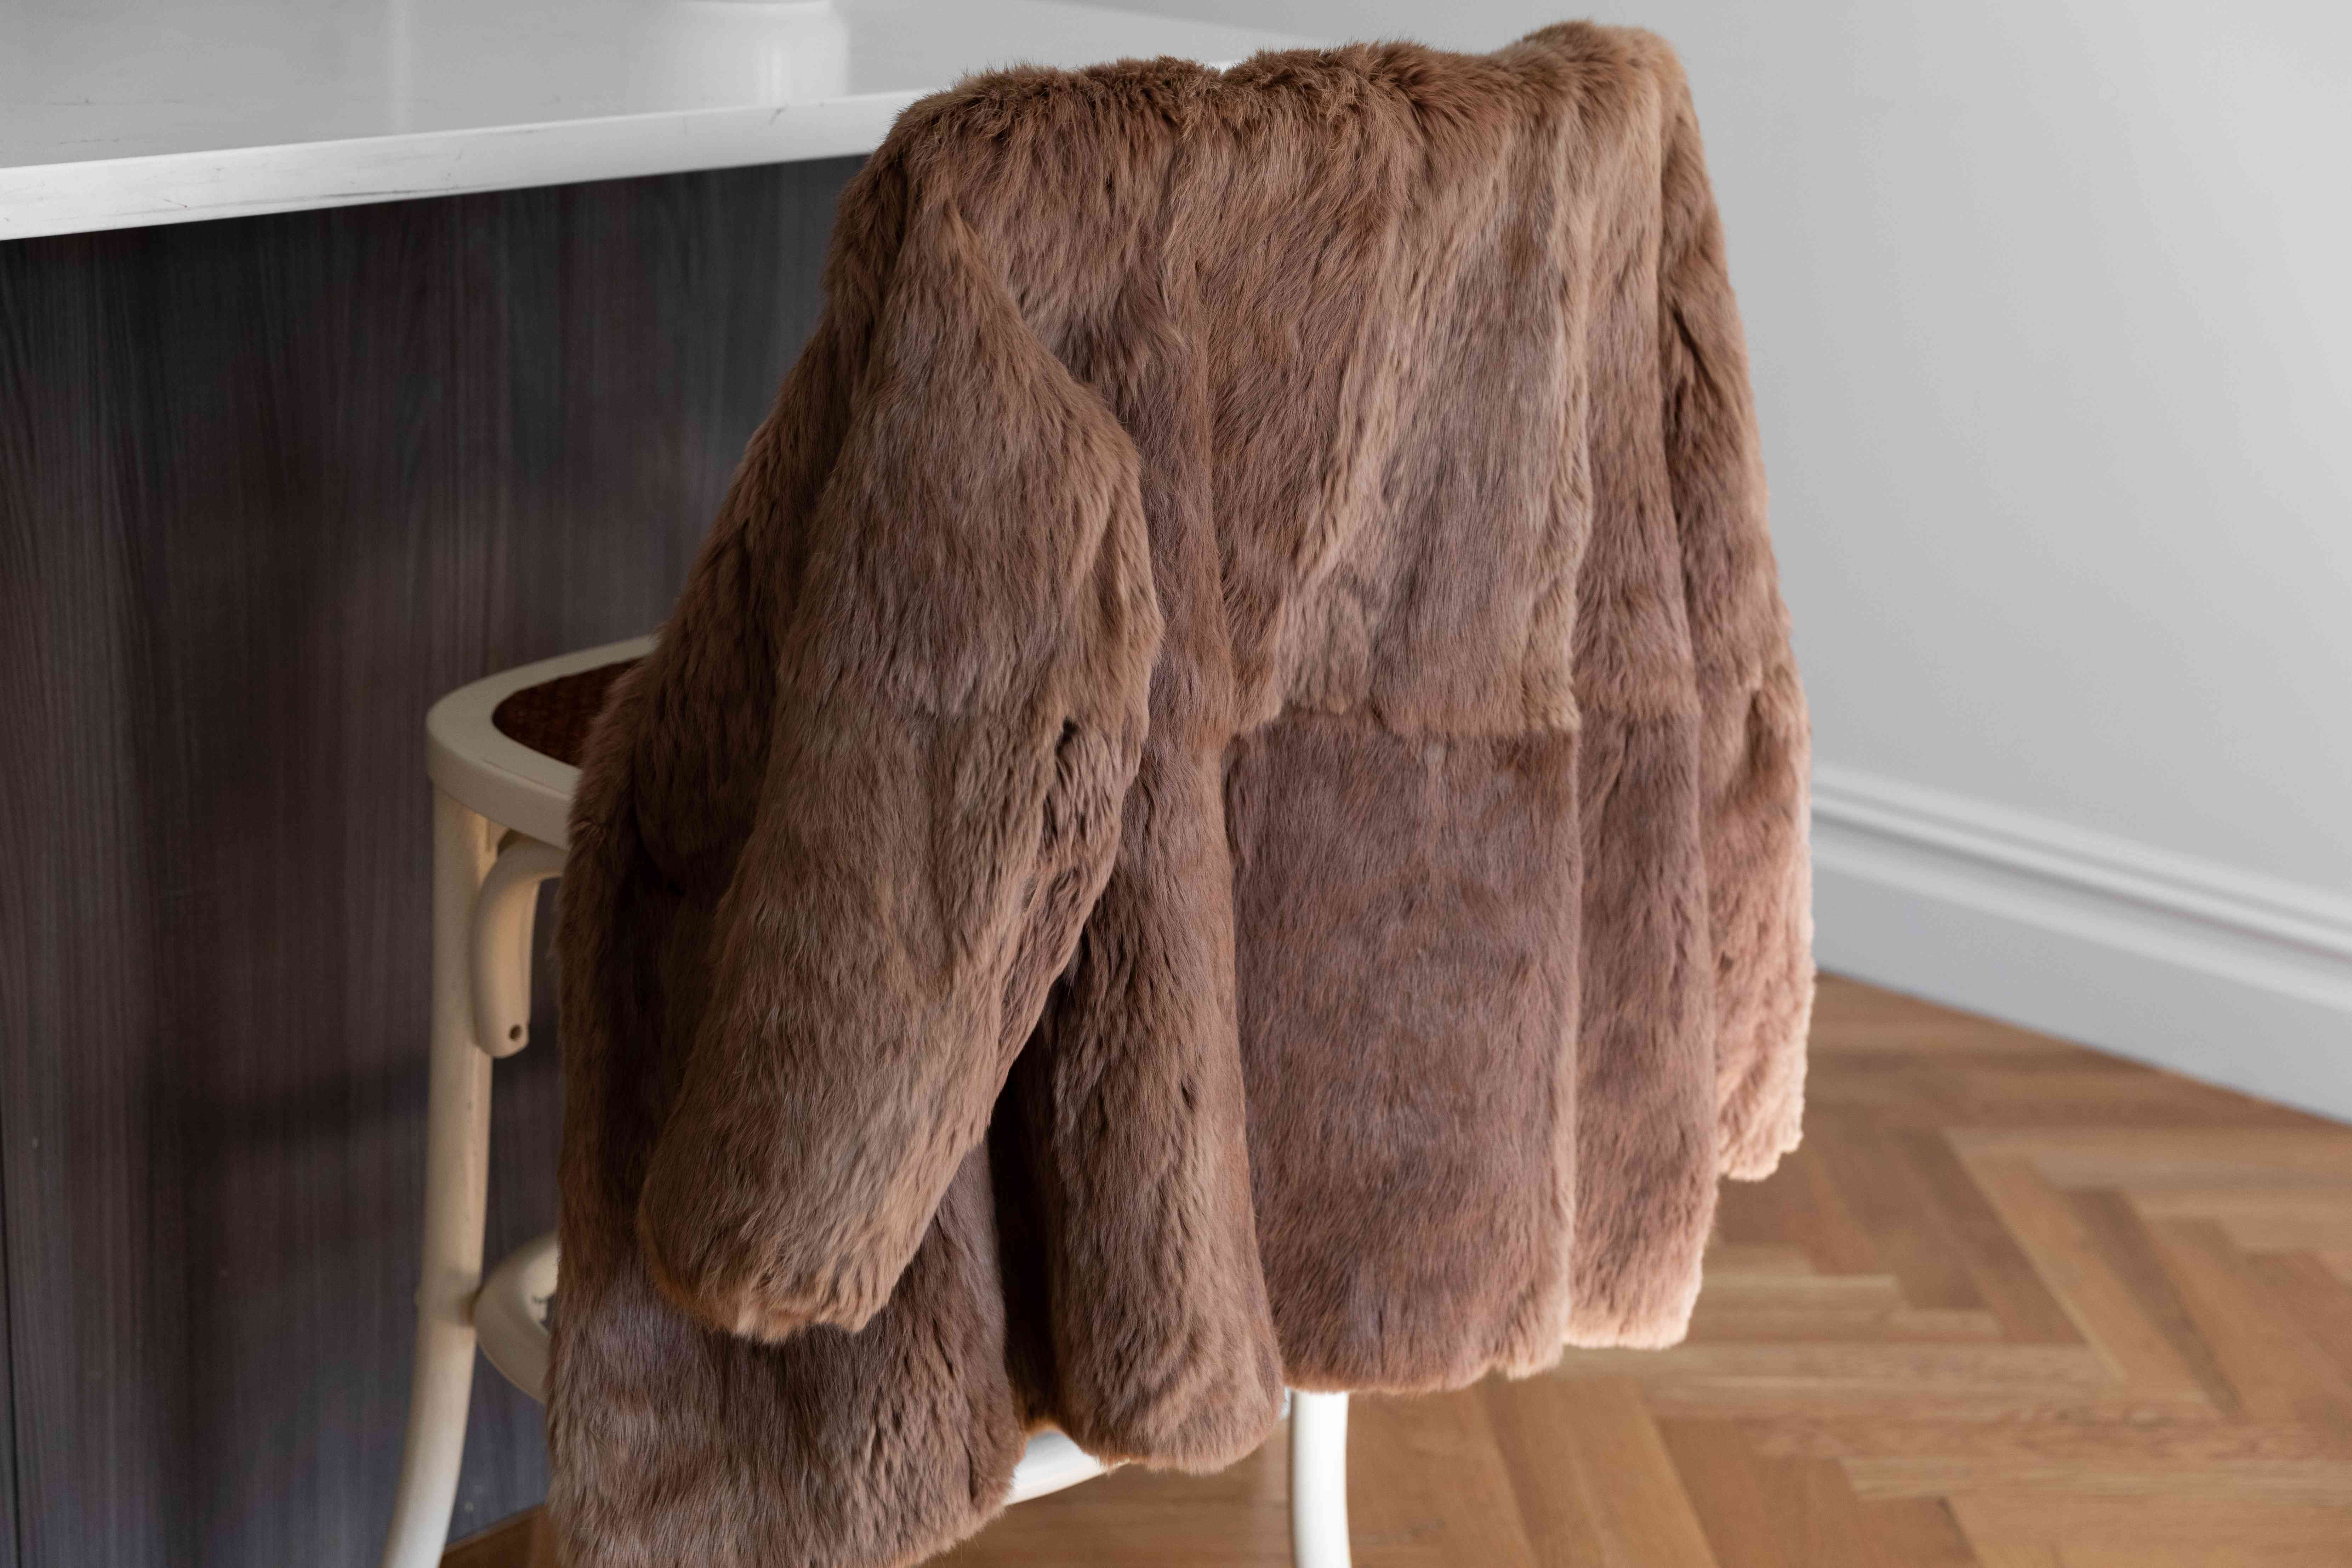 A brown fur coat hanging on a chair back